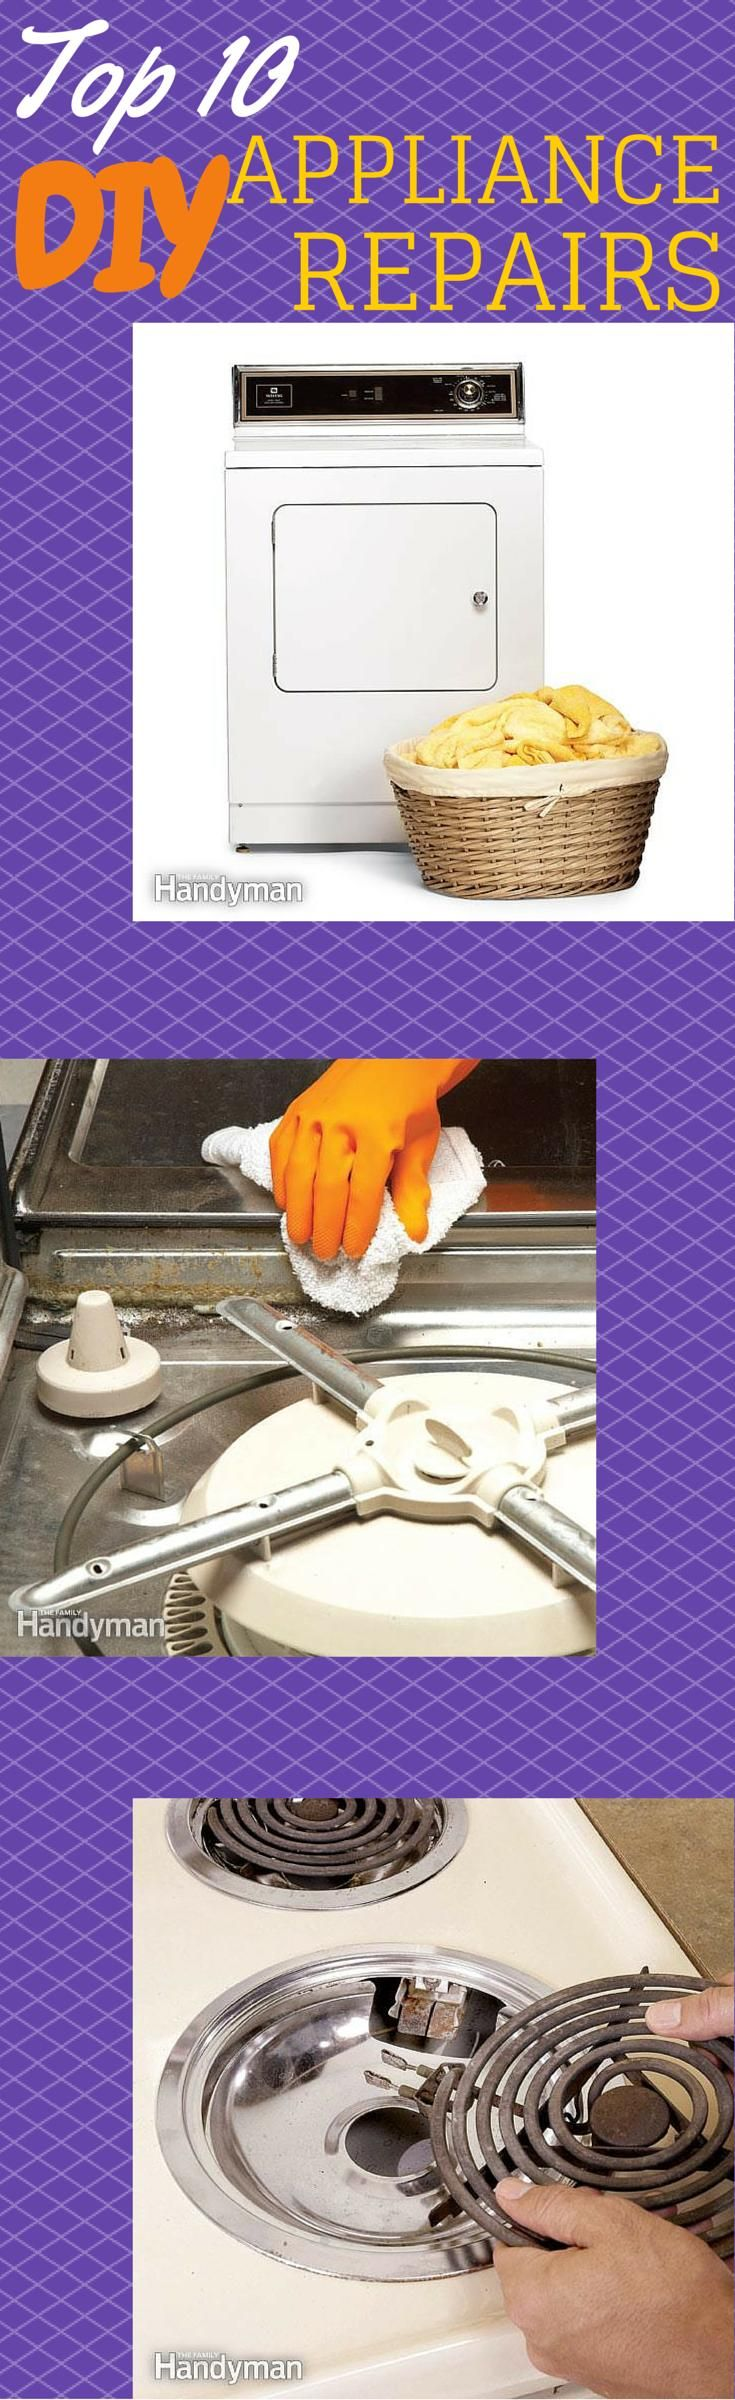 The Top 10 DIY Appliance Repairs: Fix your appliances yourself and save money! http://www.familyhandyman.com/appliance-repair/the-top-10-diy-appliance-repairs